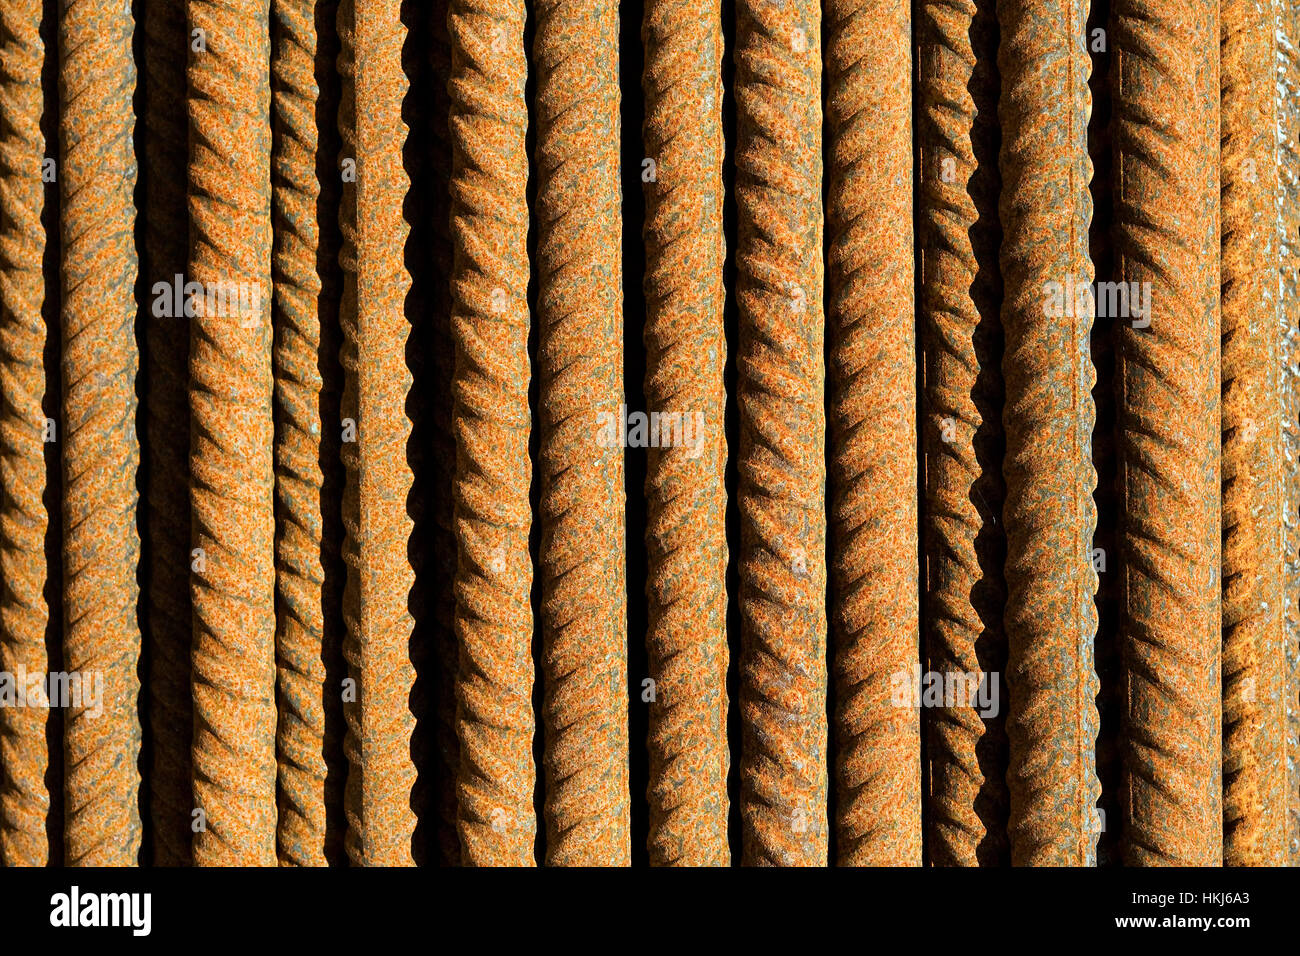 Parallel oriented rusty steel rods in sunlight background concept - Stock Image